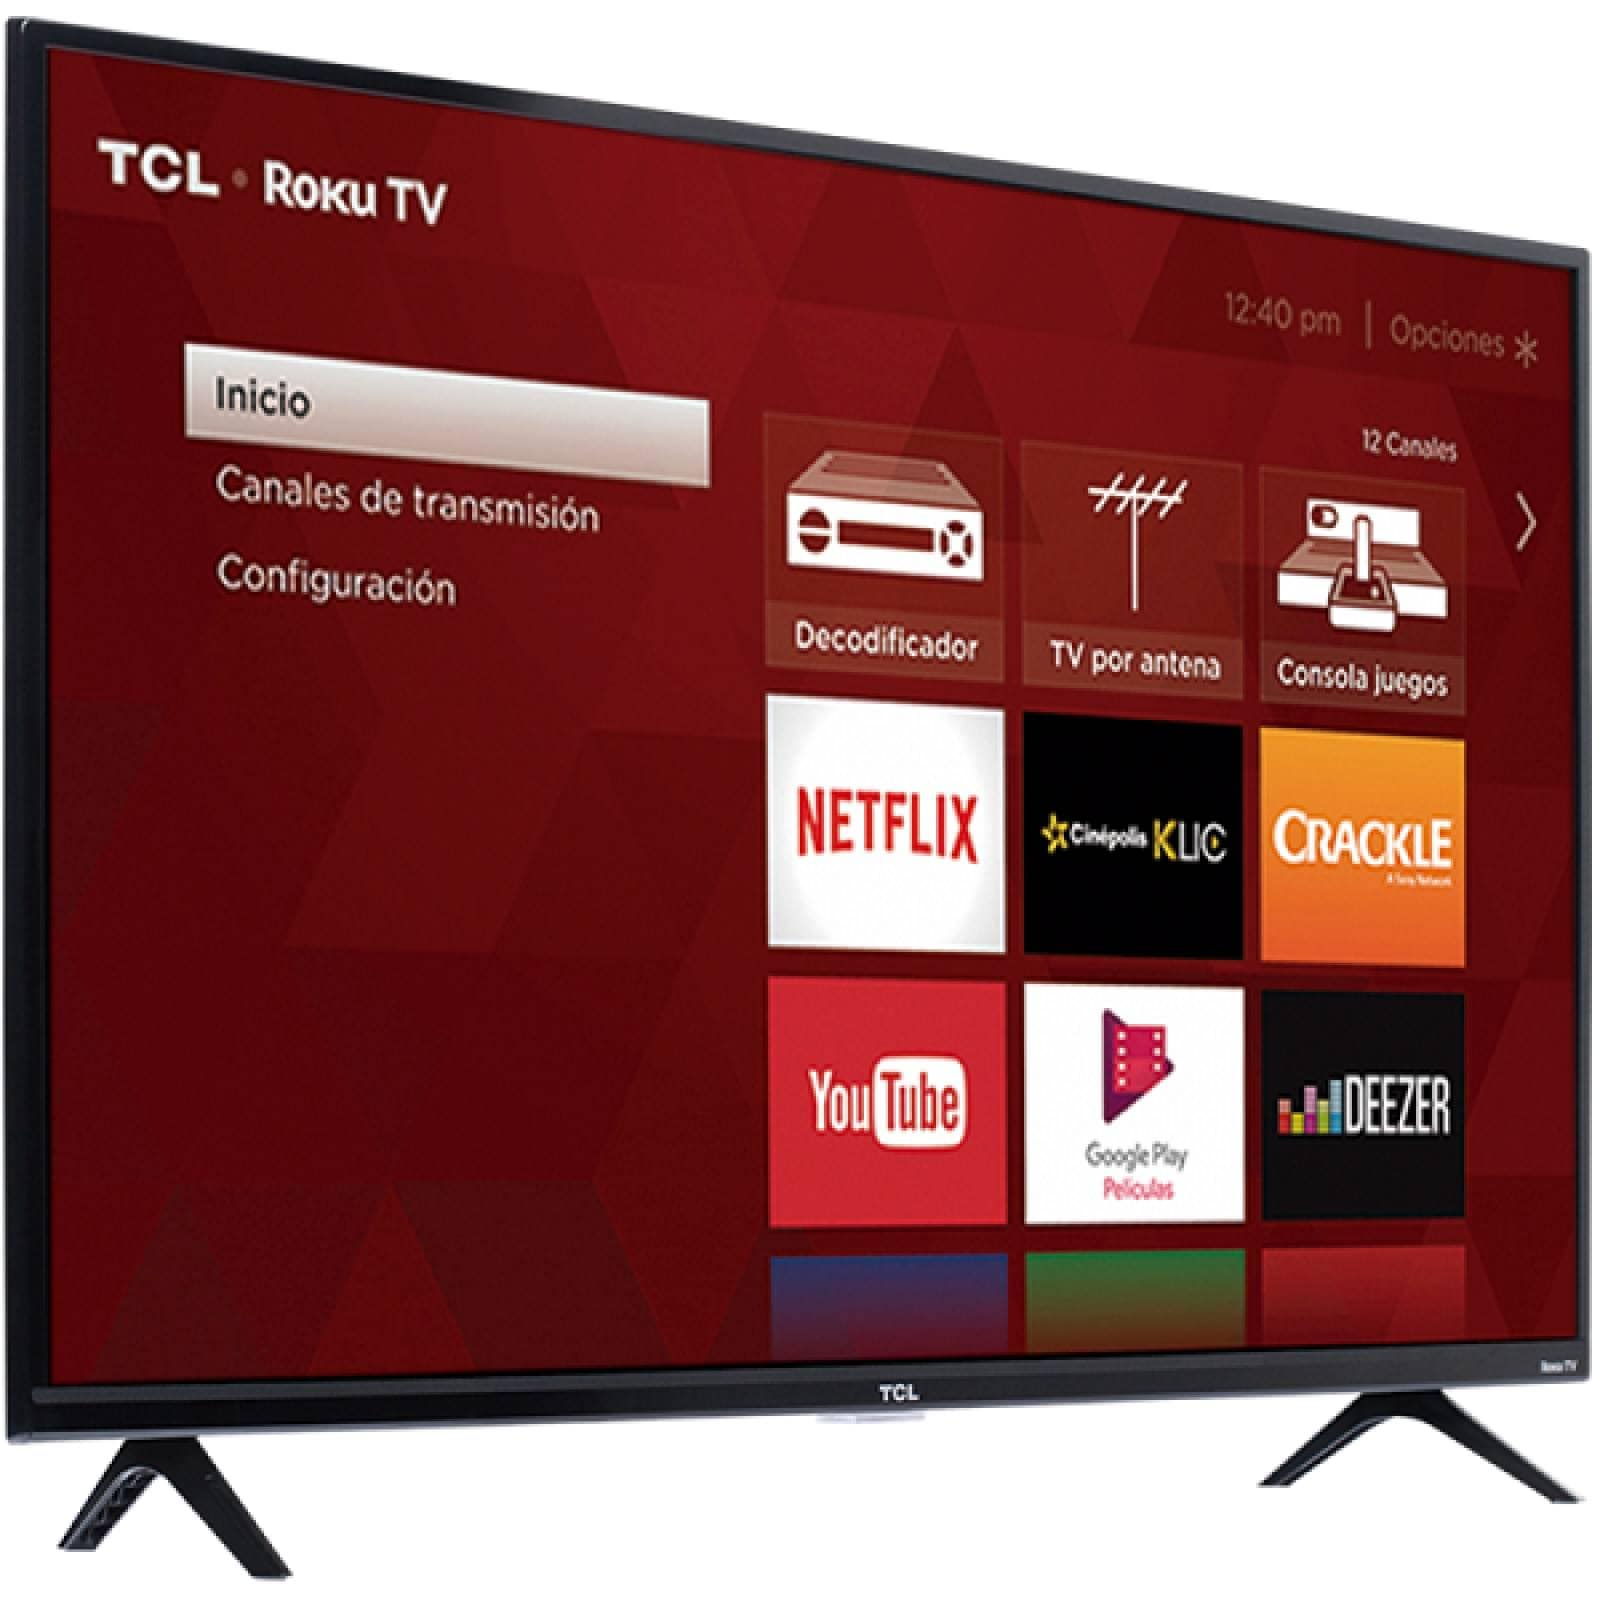 Smart TV 55 TCL 4K UHD Roku TV HDMI USB WIFI 55S425